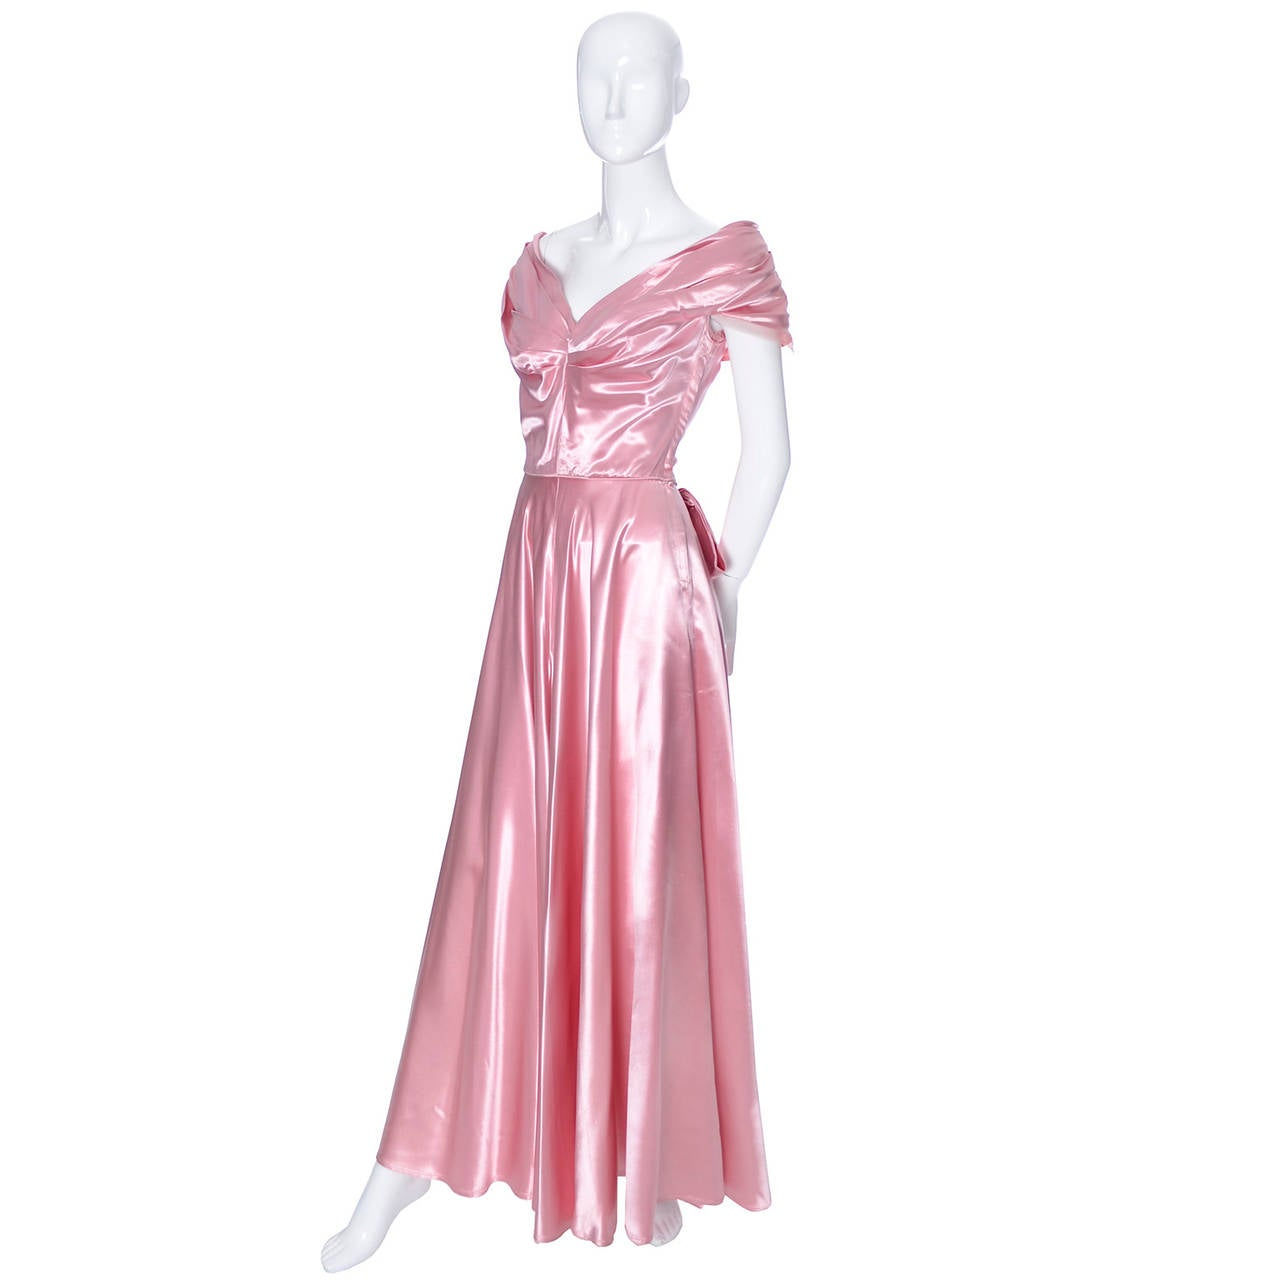 Emma Domb Formal Vintage Dress 1940s Slipper Satin Pink Evening Gown Bridal In Good Condition For Sale In Portland, OR